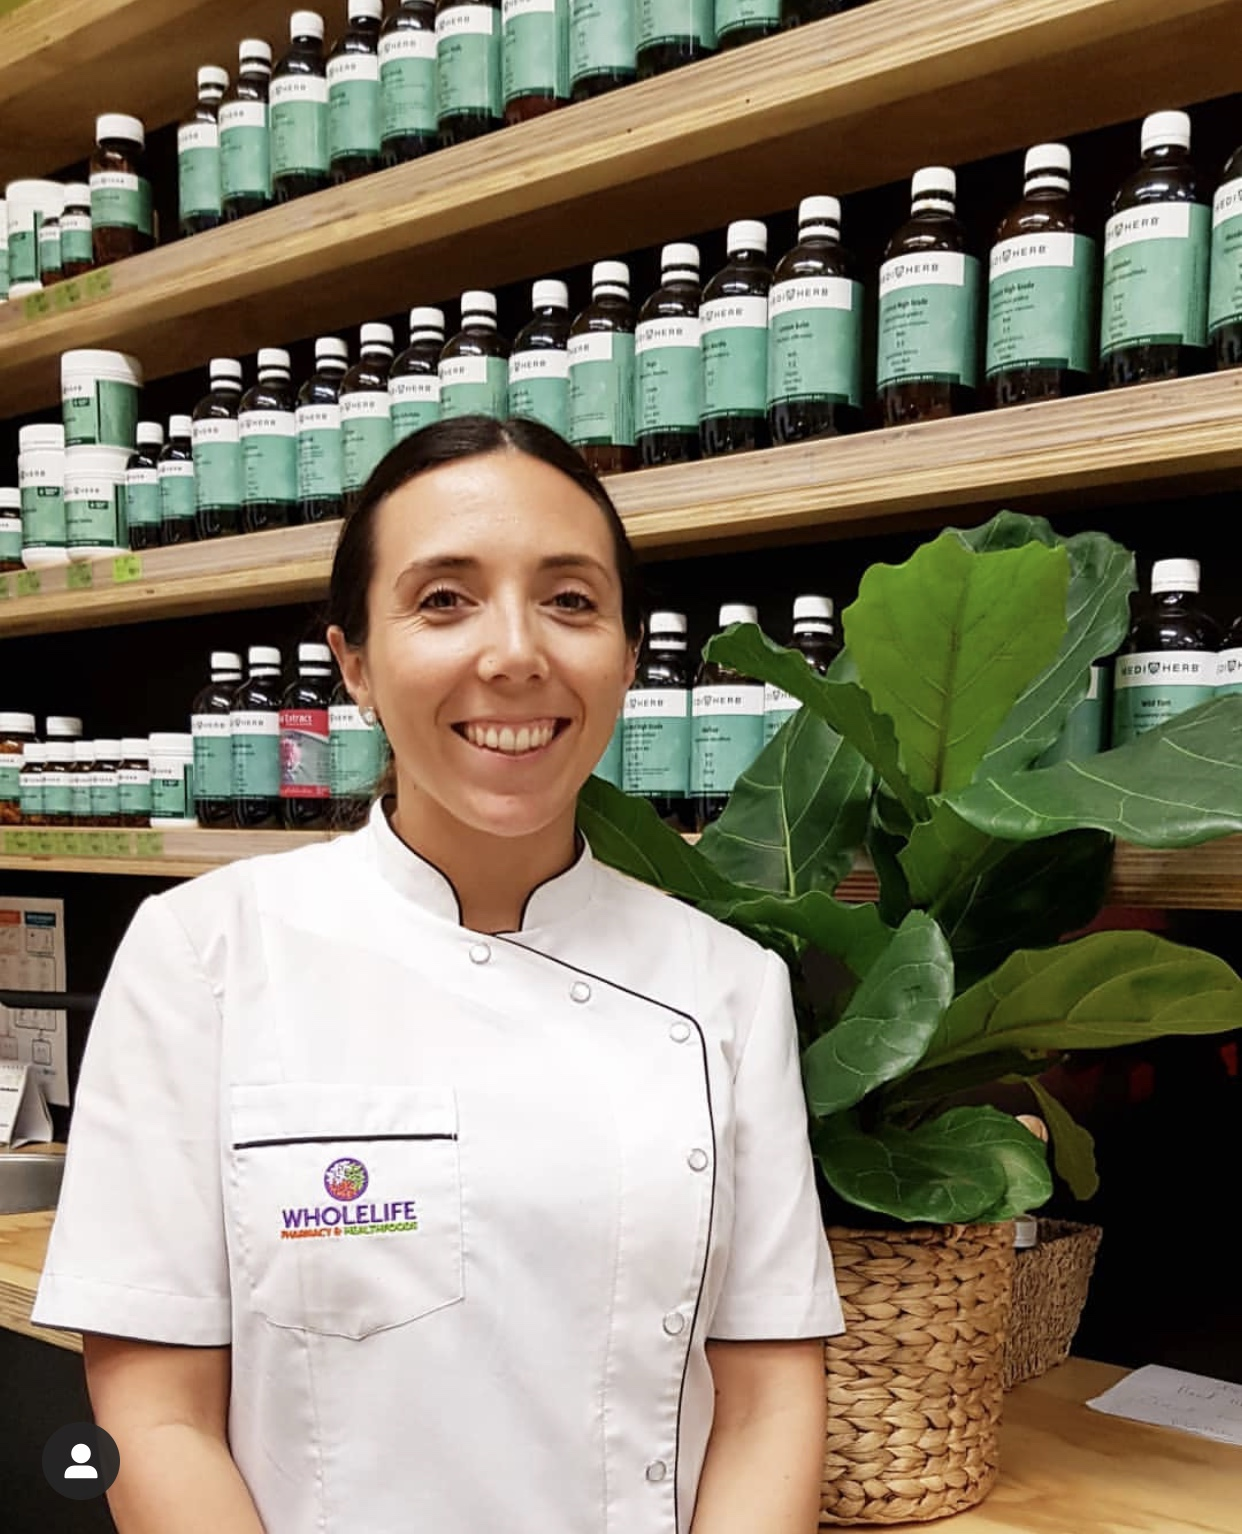 Naturopath at Wholelife Wellness Centre